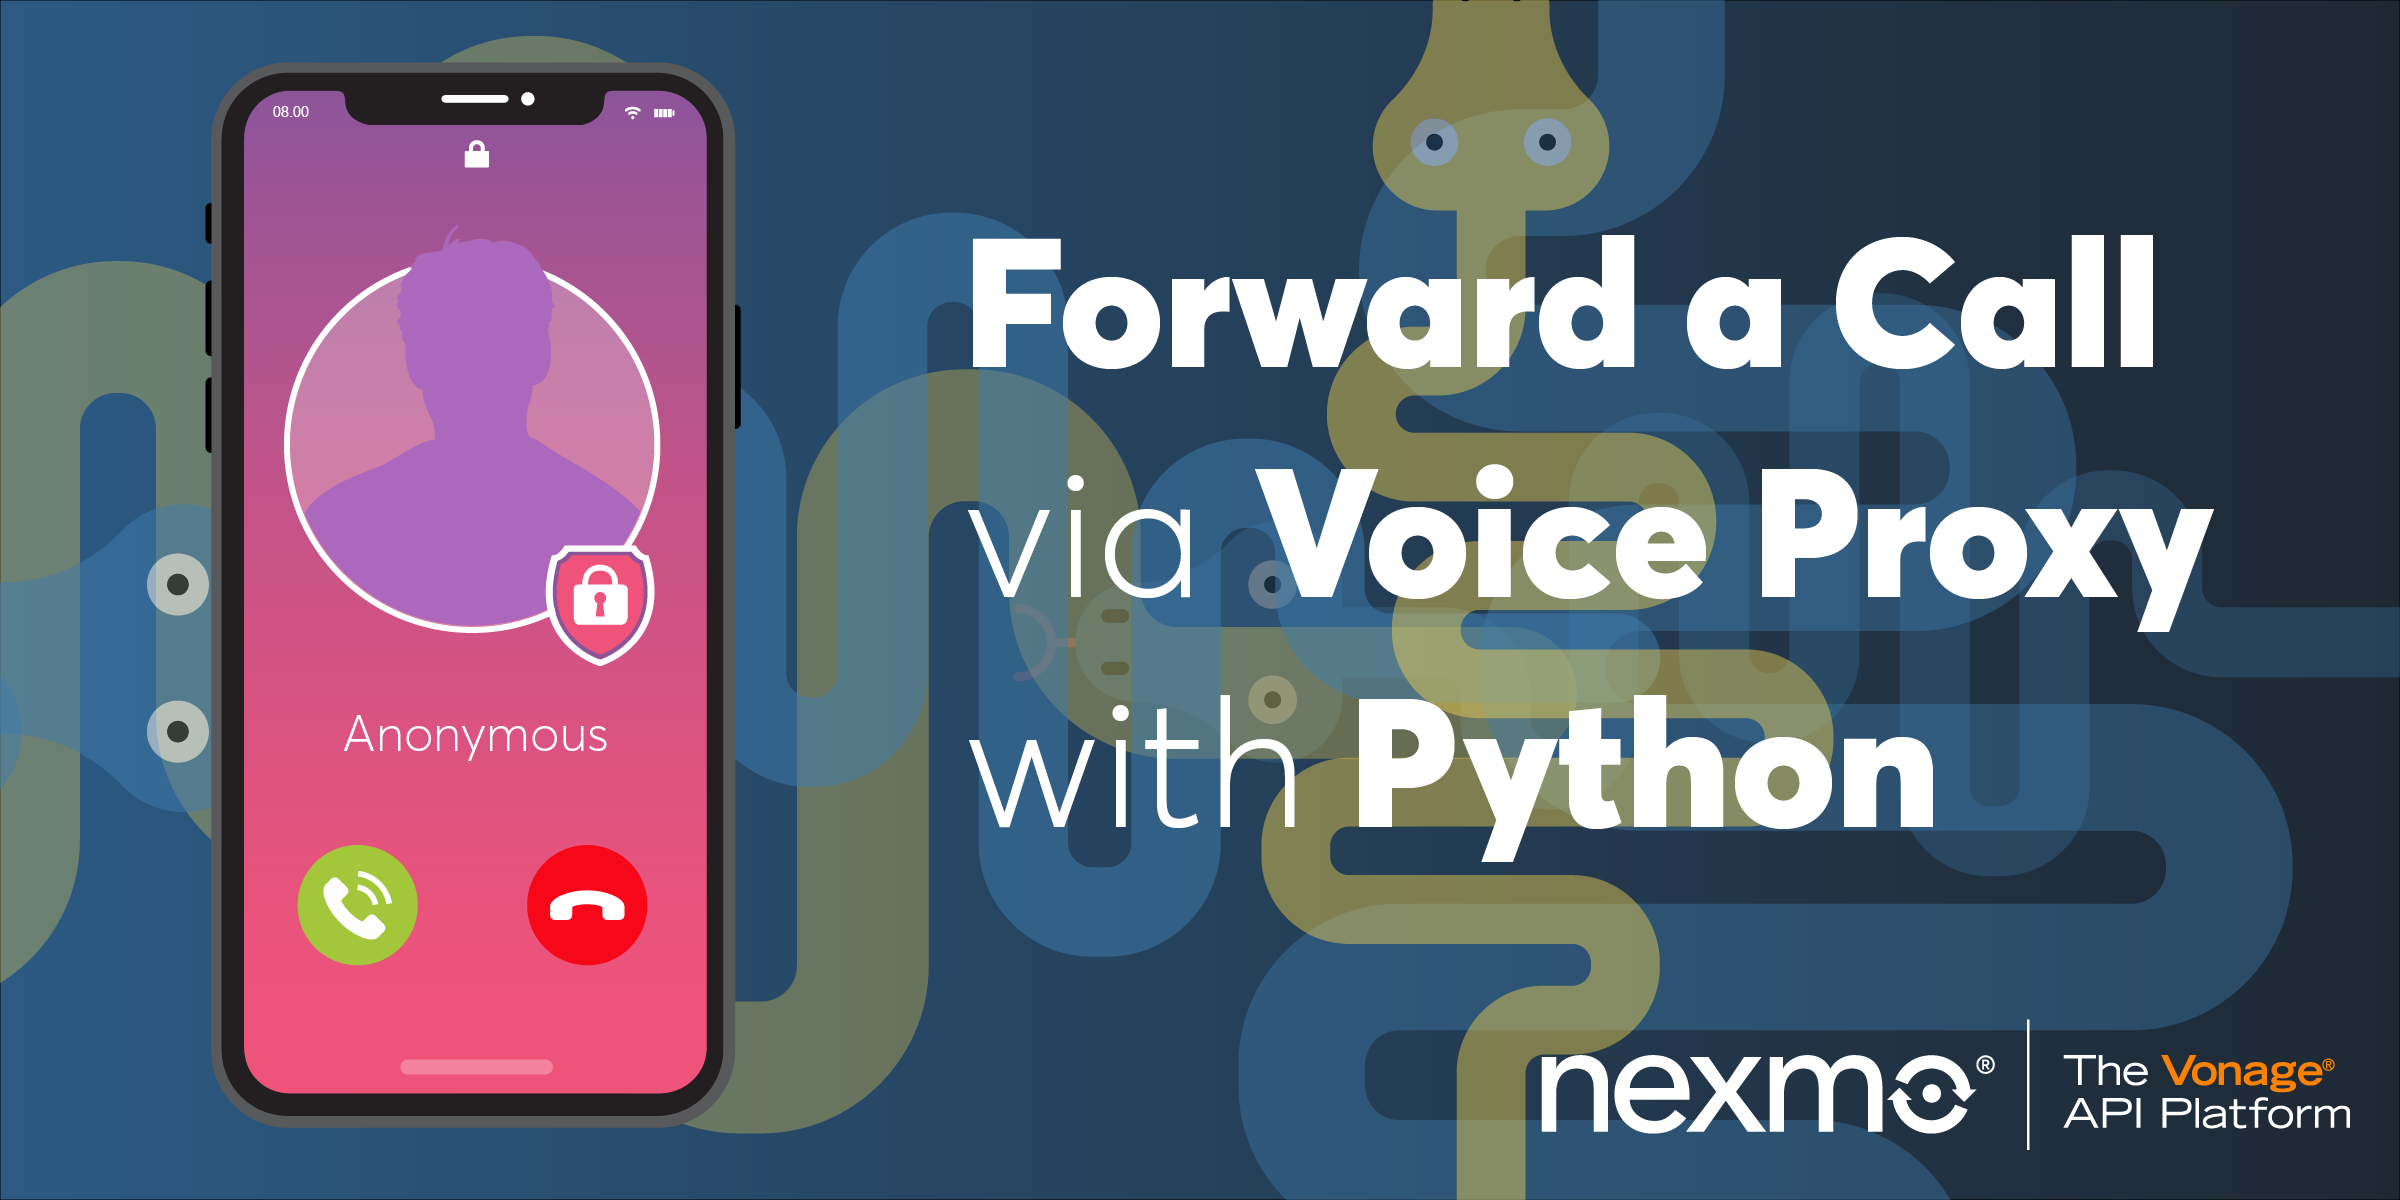 Forward a Telephone Call Via Voice Proxy with Python and